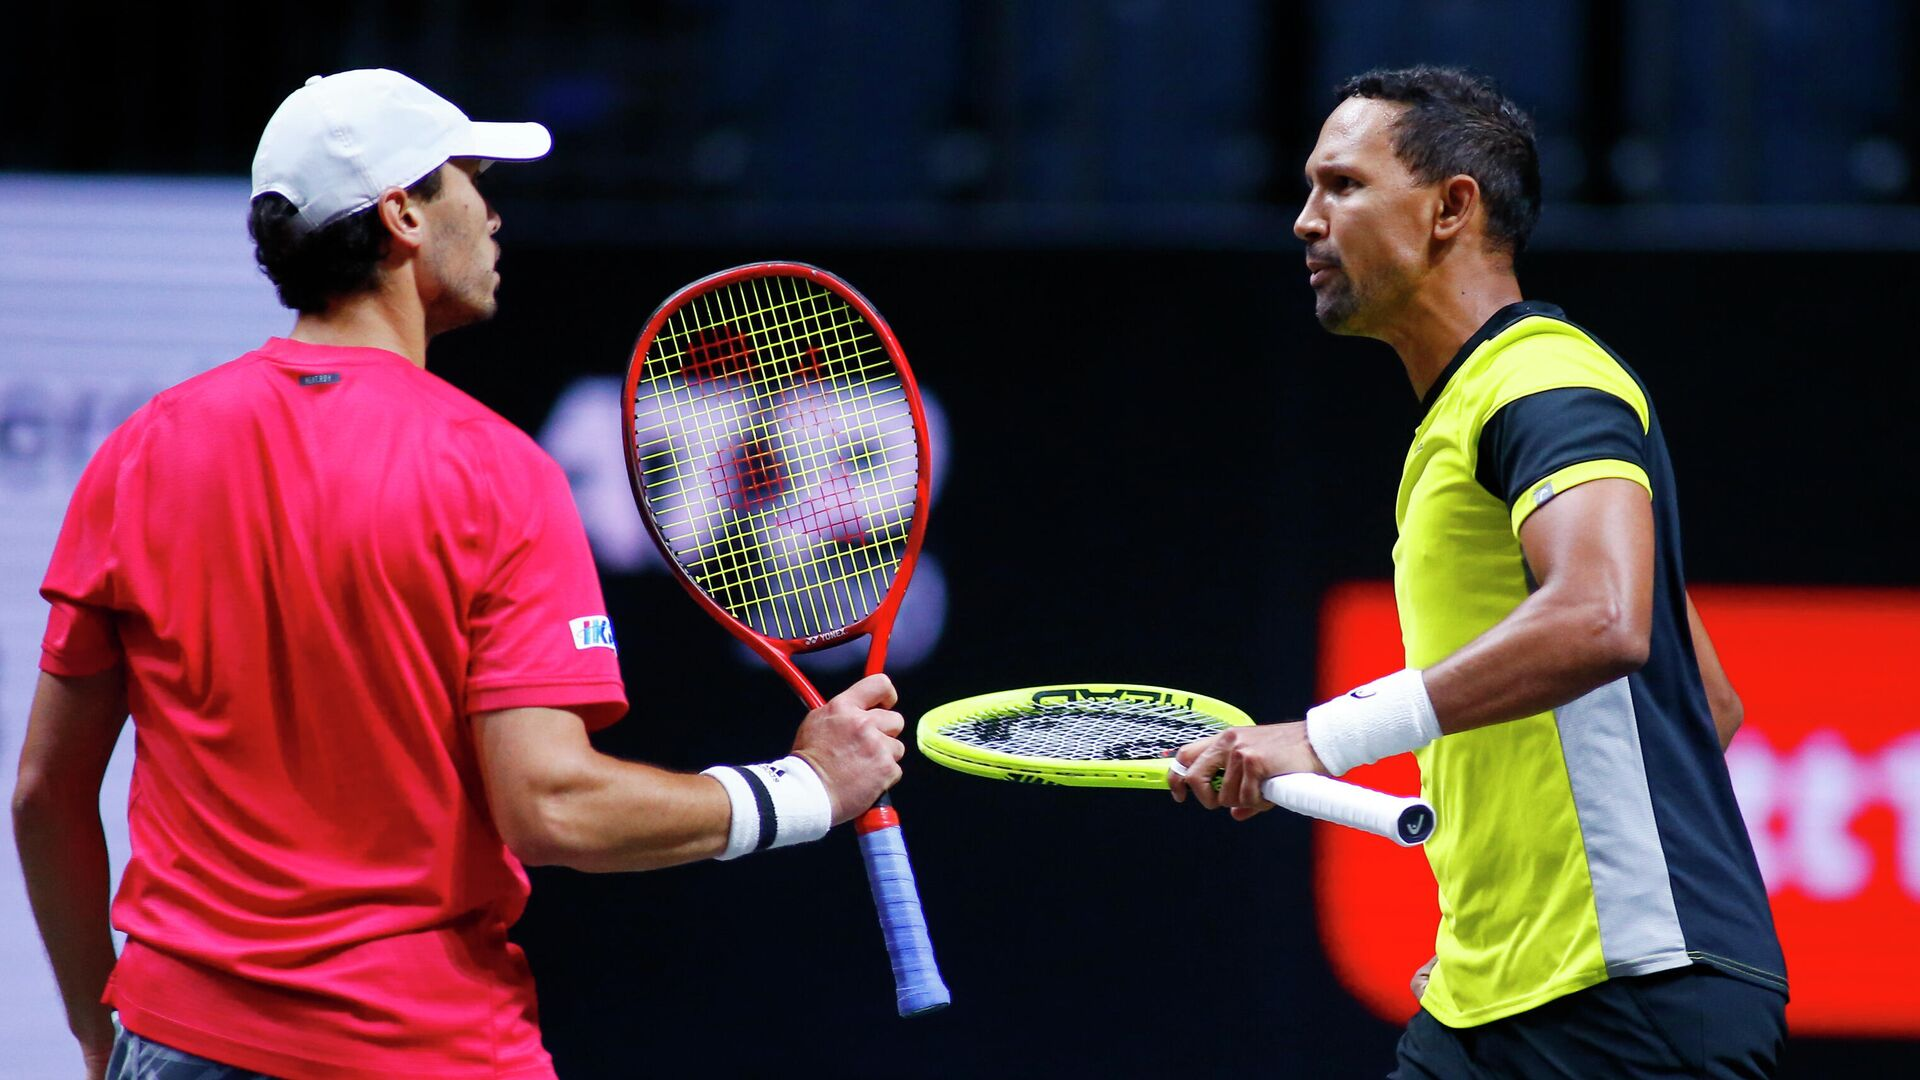 Tennis - ATP 250 - bett1HULKS Championship - Lanxess Arena Cologne, Cologne, Germany - October 25, 2020 South Africa's Raven Klaasen and Japan's Ben McLachlan celebrate during their final match against Germany's Kevin Krawietz and Andreas Mies REUTERS/Thilo Schmuelgen - РИА Новости, 1920, 25.10.2020